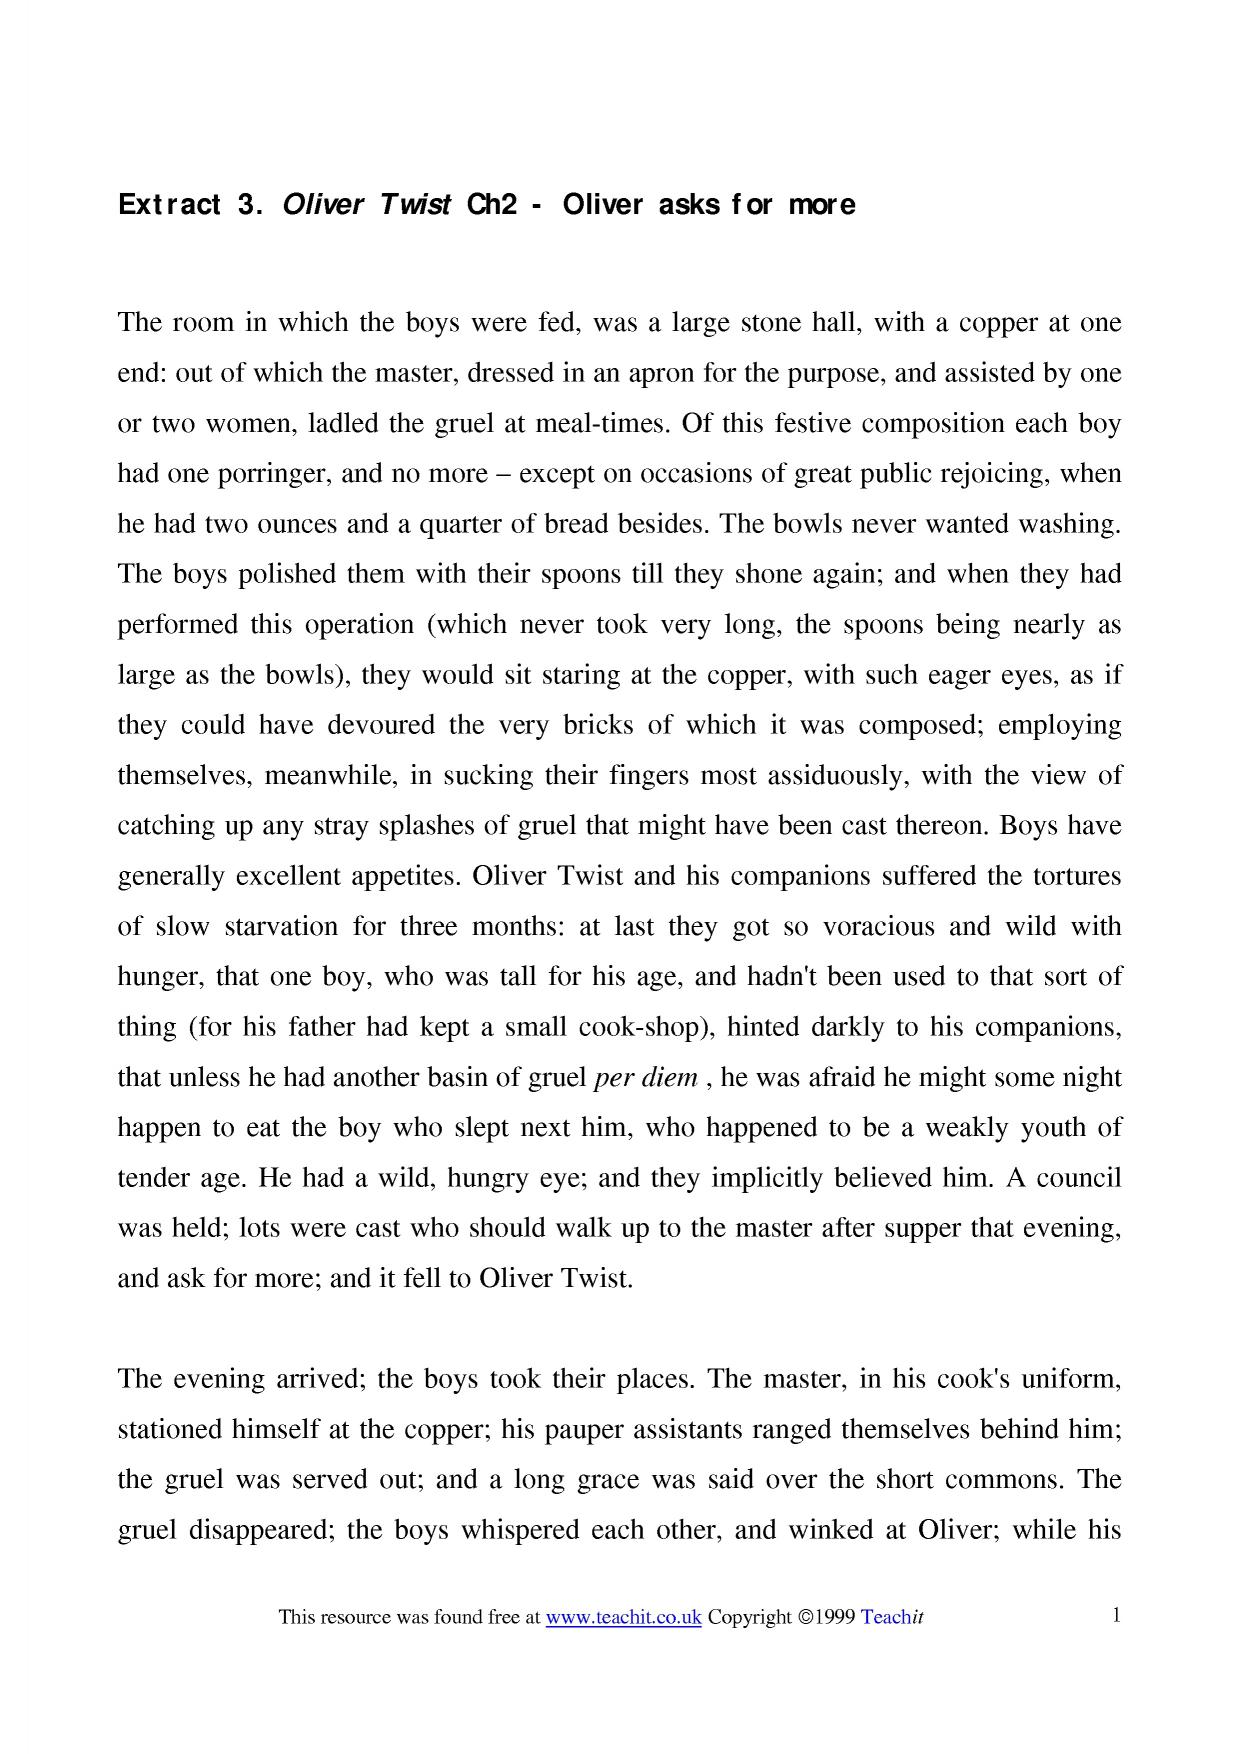 oliver twist thesis essay Oliver twist was written by english author, charles dickens charles was one of the best novelists in english literature this book is about oliver twist, an orphan who leaves a workhouse and goes to london.